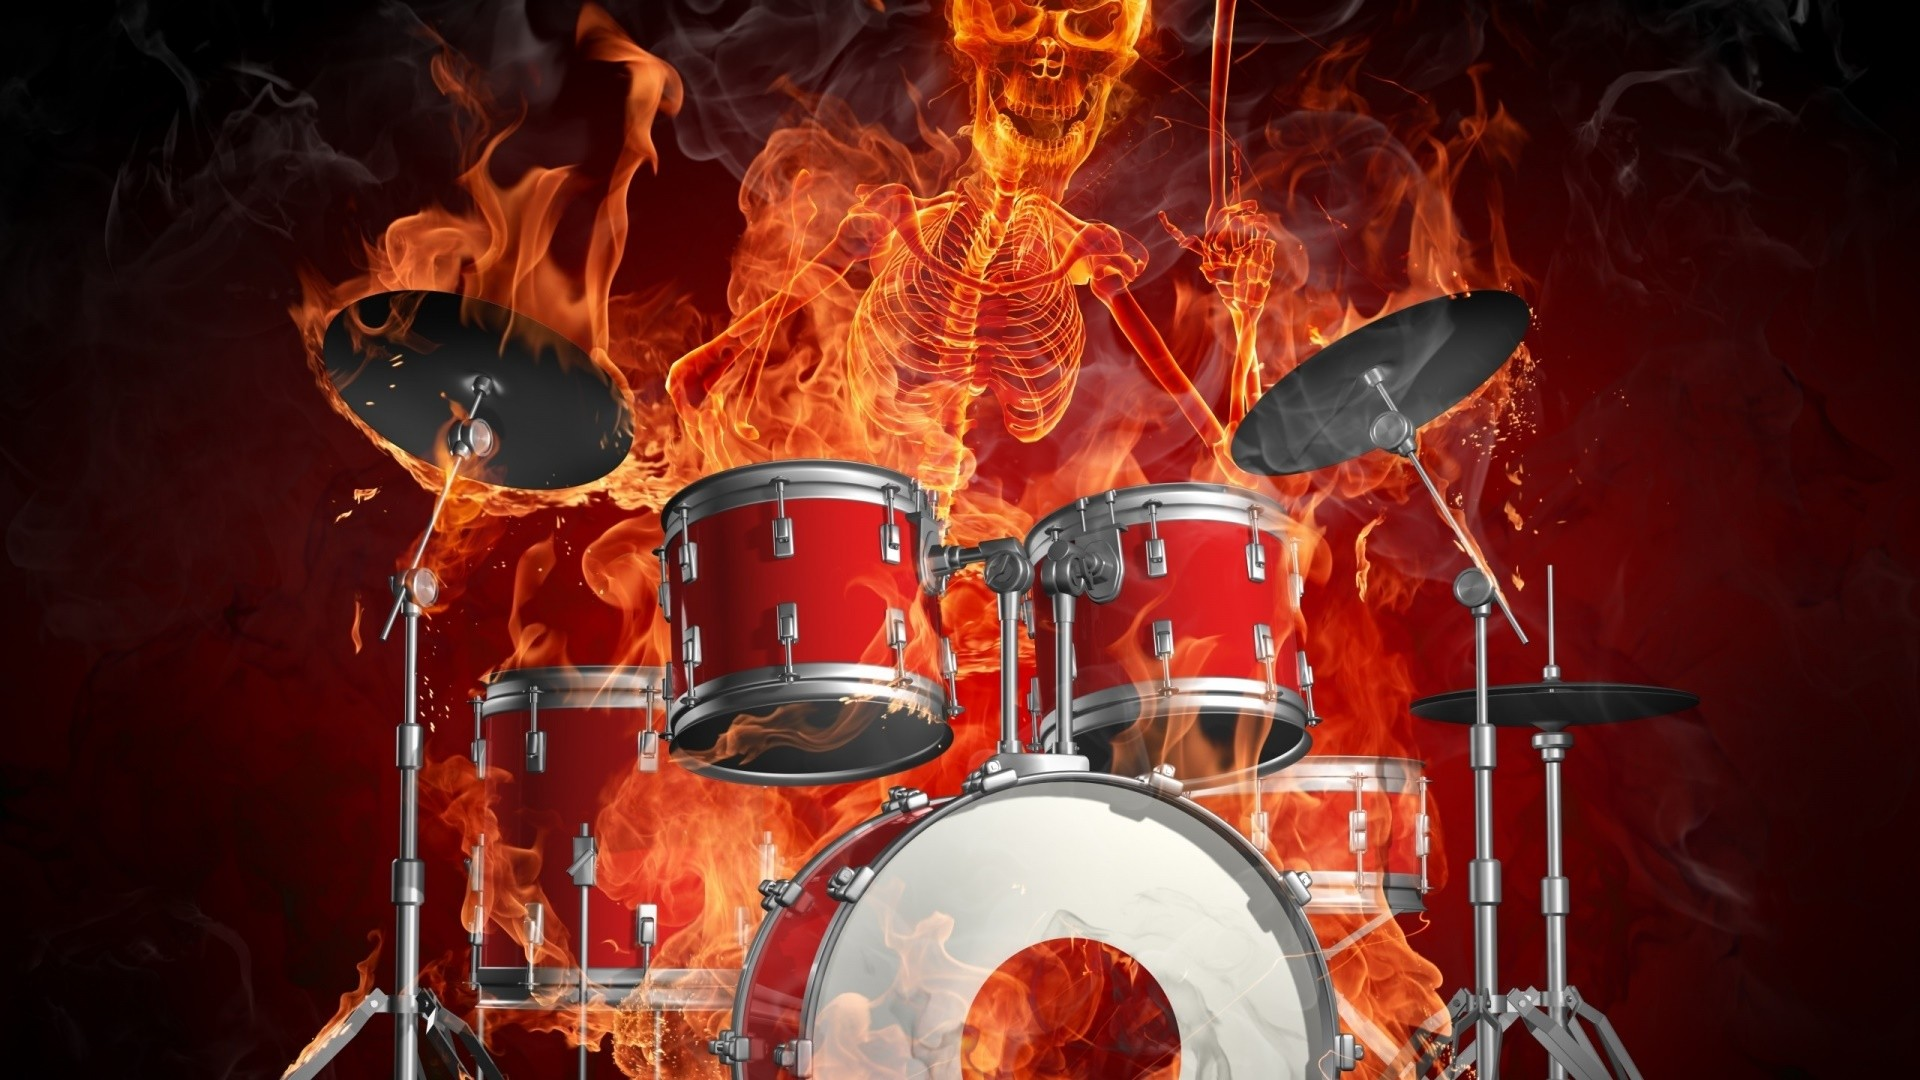 Res: 1920x1080, Drums And A Skeleton Of A Man Burn In Flames Wallpaper | Wallpaper Studio  10 | Tens of thousands HD and UltraHD wallpapers for Android, Windows and  Xbox